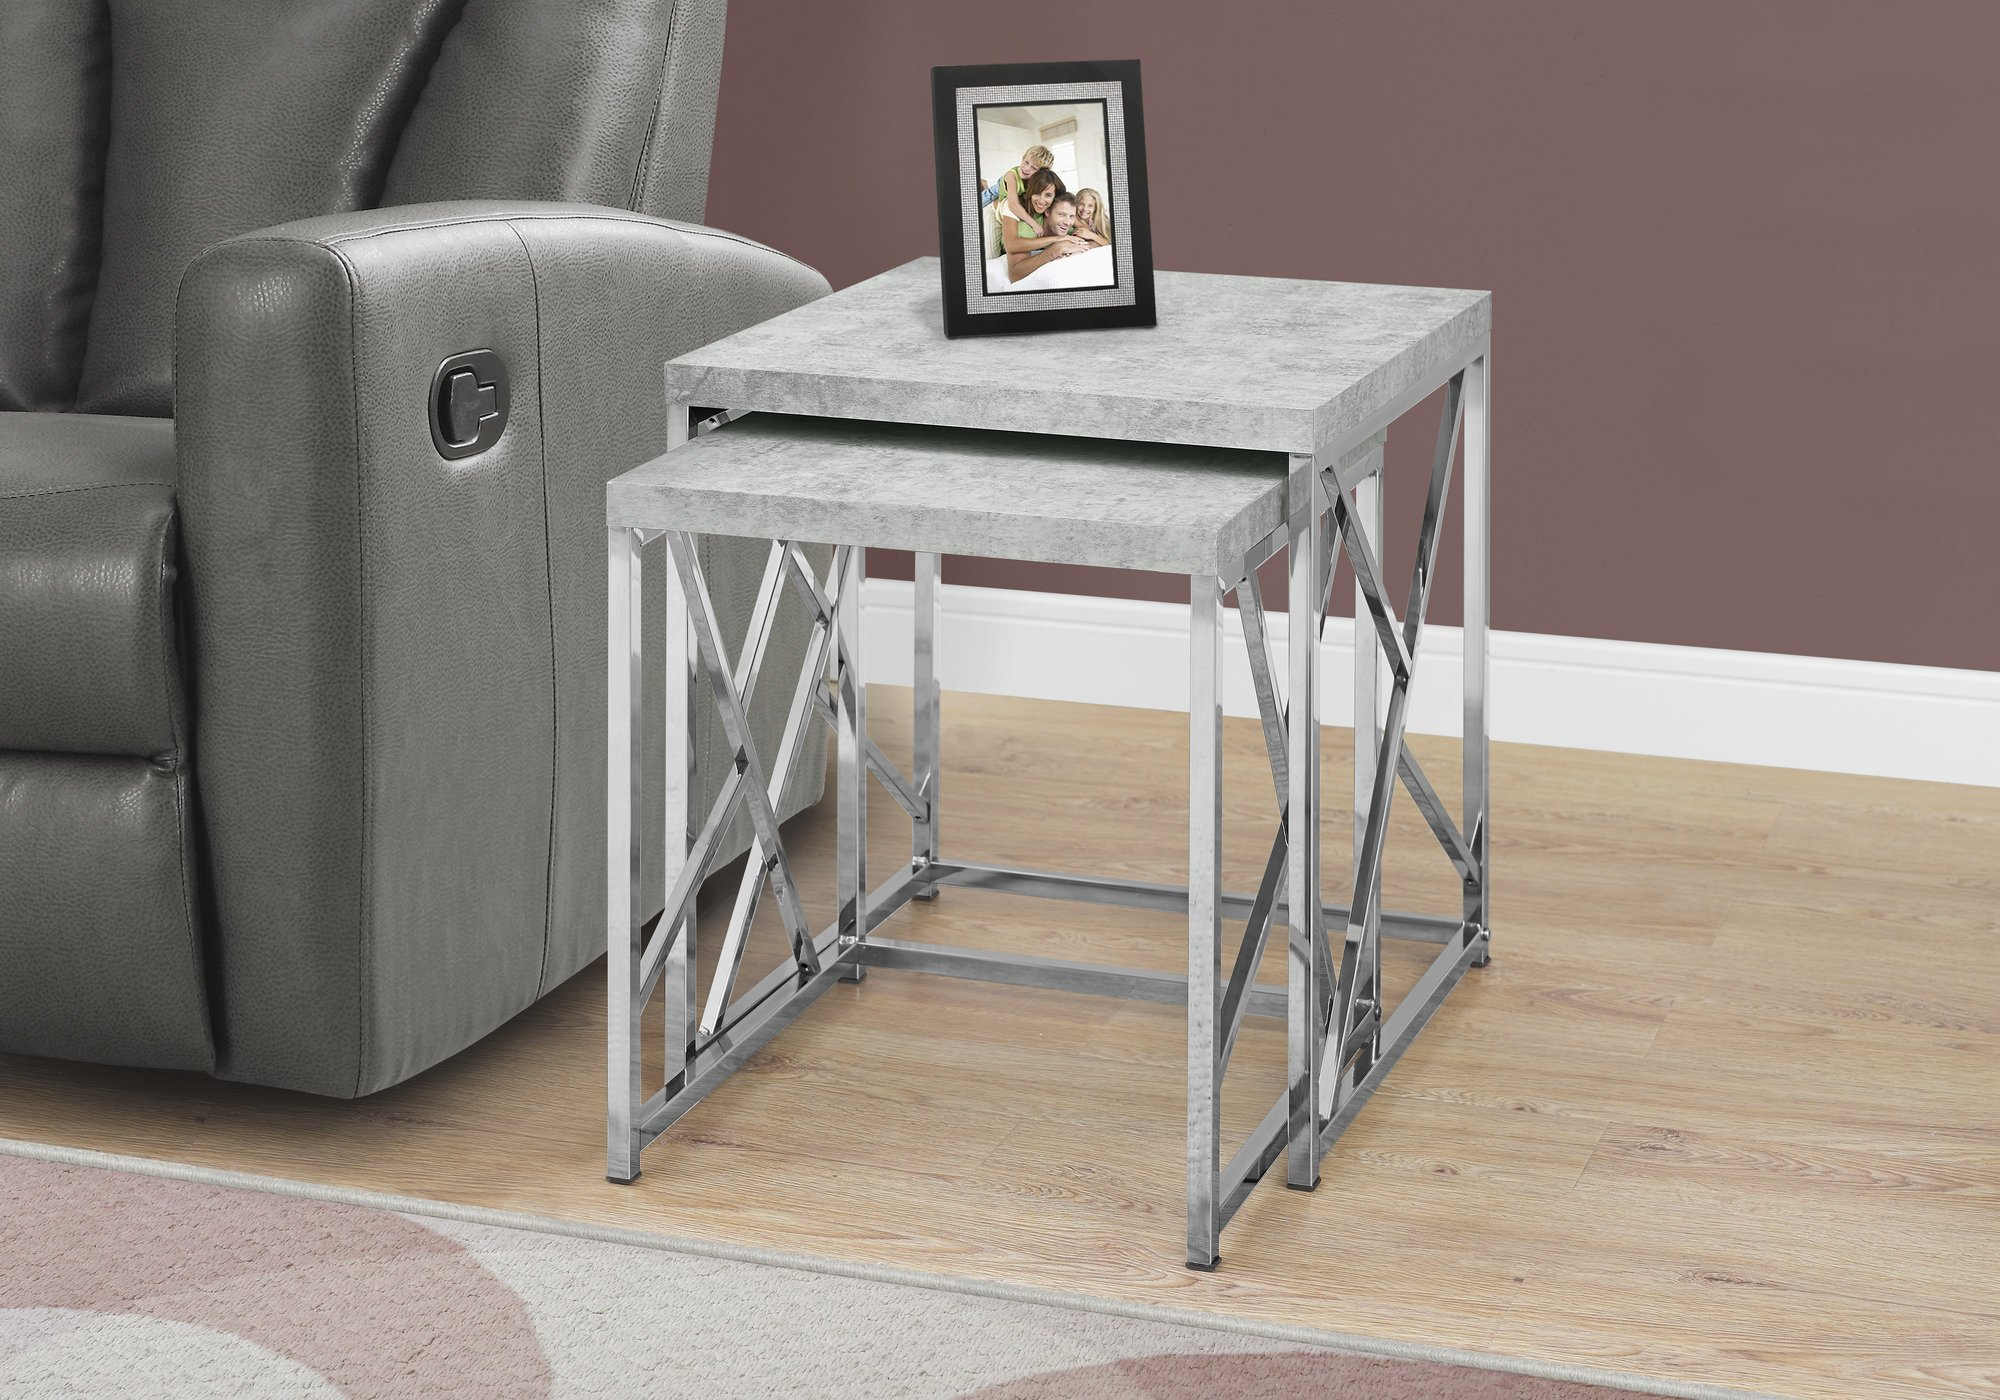 Monarch Specialties I Nesting Table-2Pcs Set/Grey Cement with Chrome Metal by Monarch Specialties